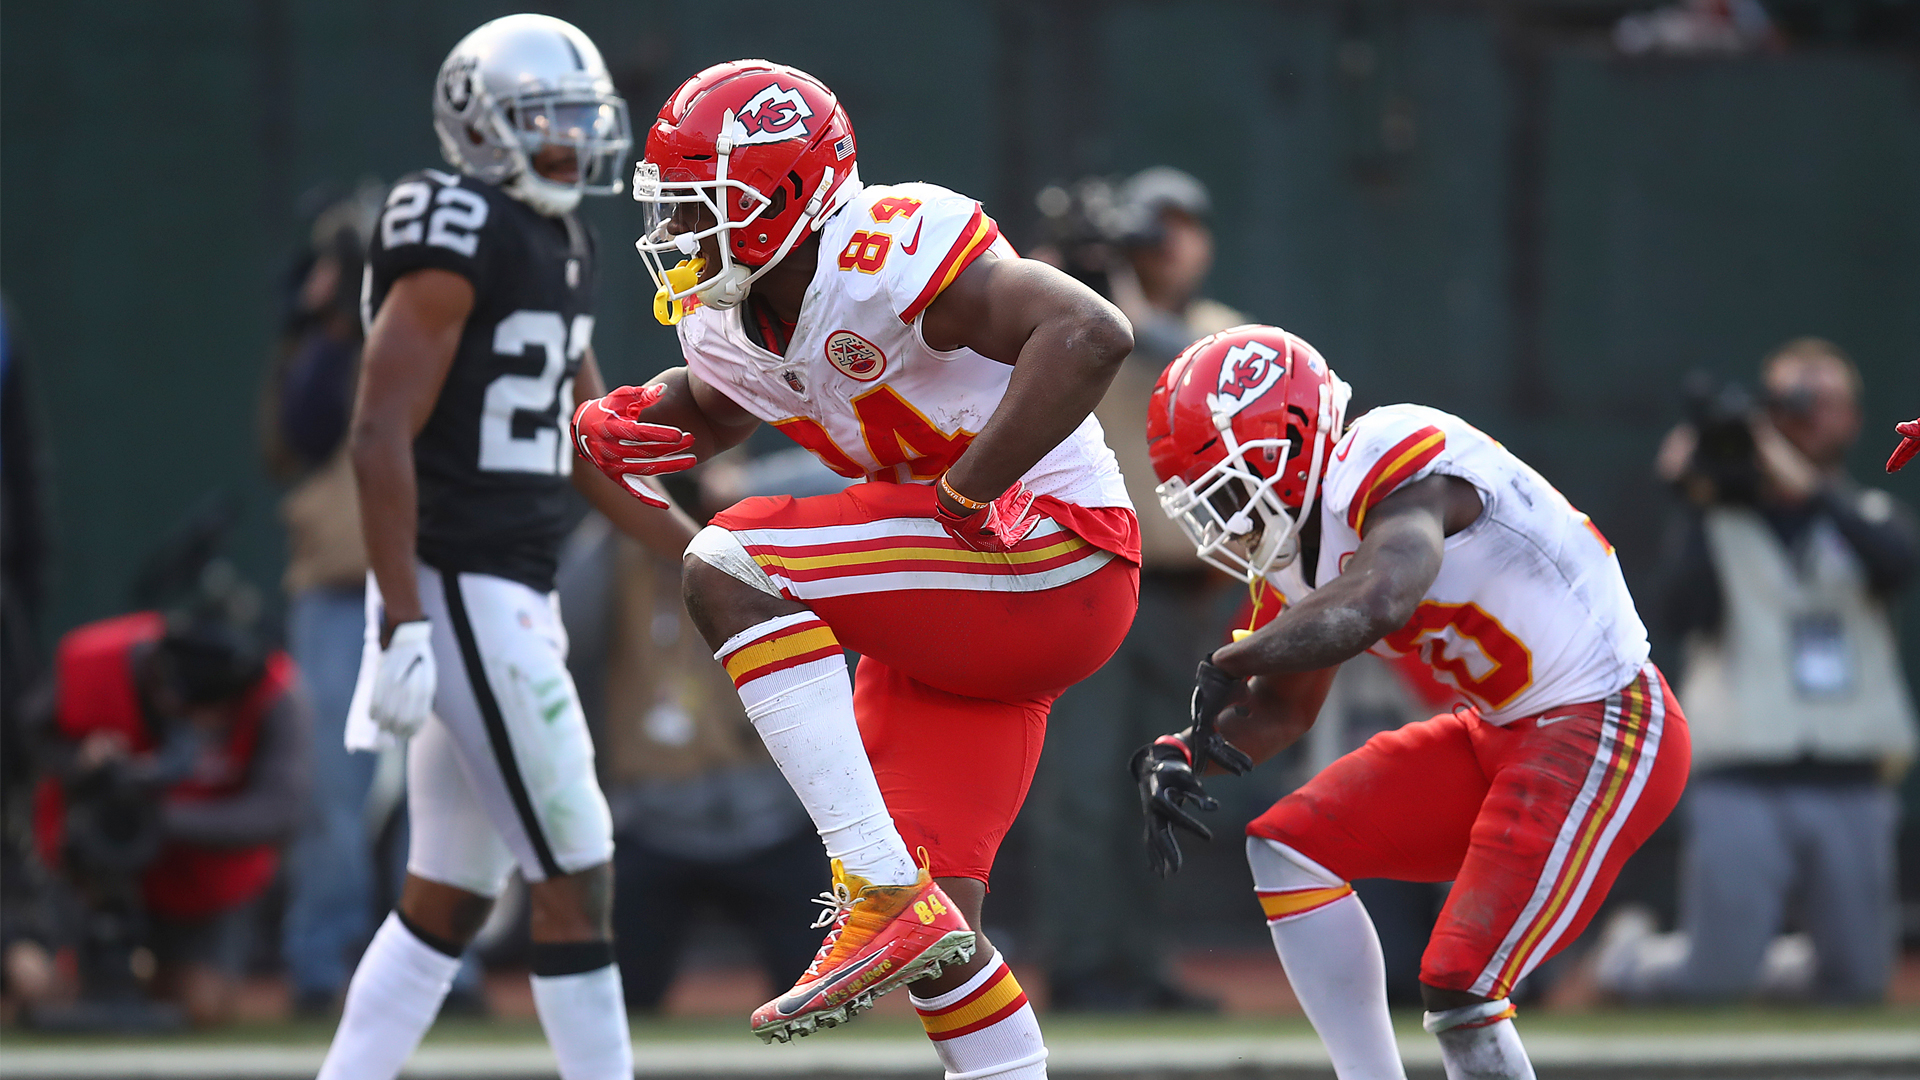 Raiders-Chiefs: KC Will Dance Its Way To Cover, AFCs Top Seed